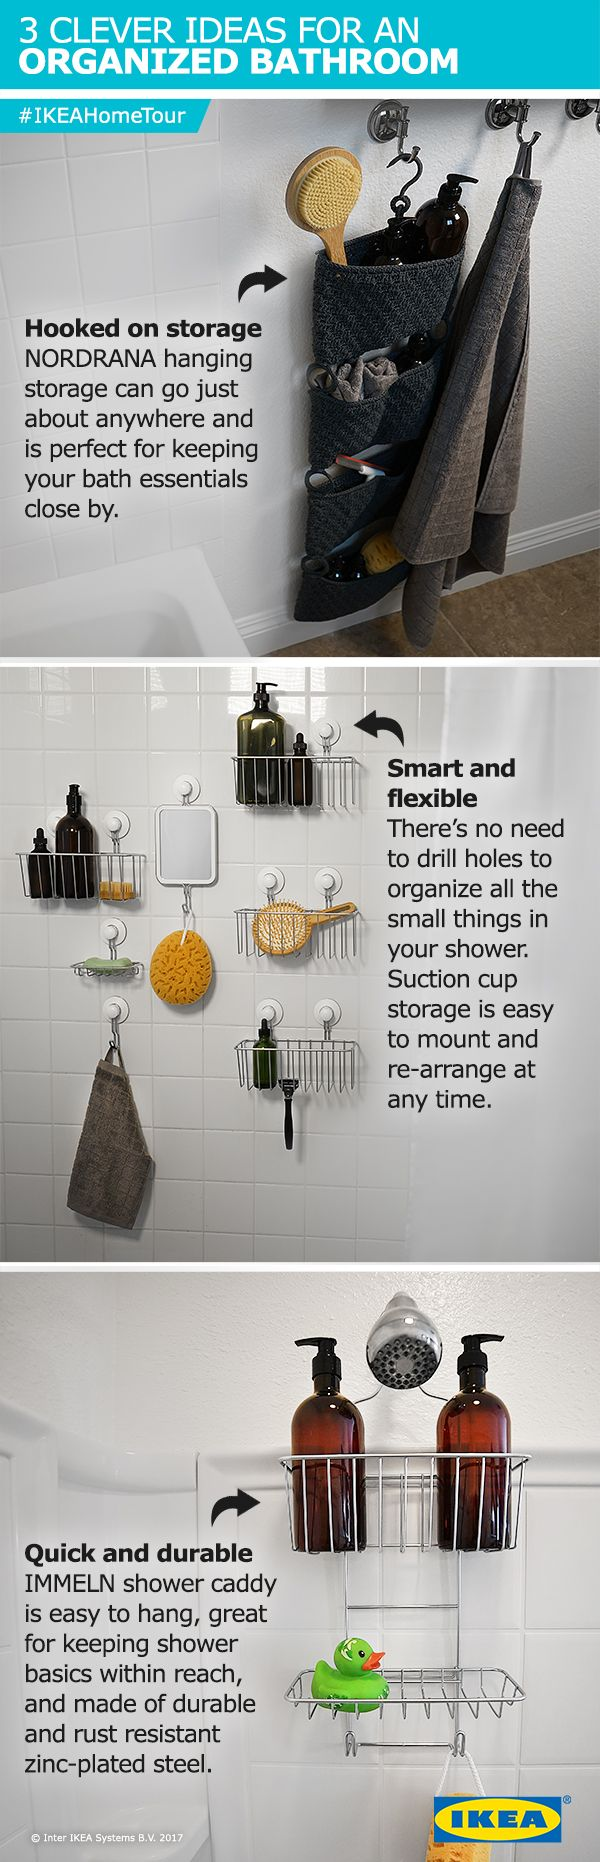 Everyone could use better, more efficient shower organization and storage. The #IKEAHomeTour Squad created simple and affordable solutions in their latest bathroom makeover.